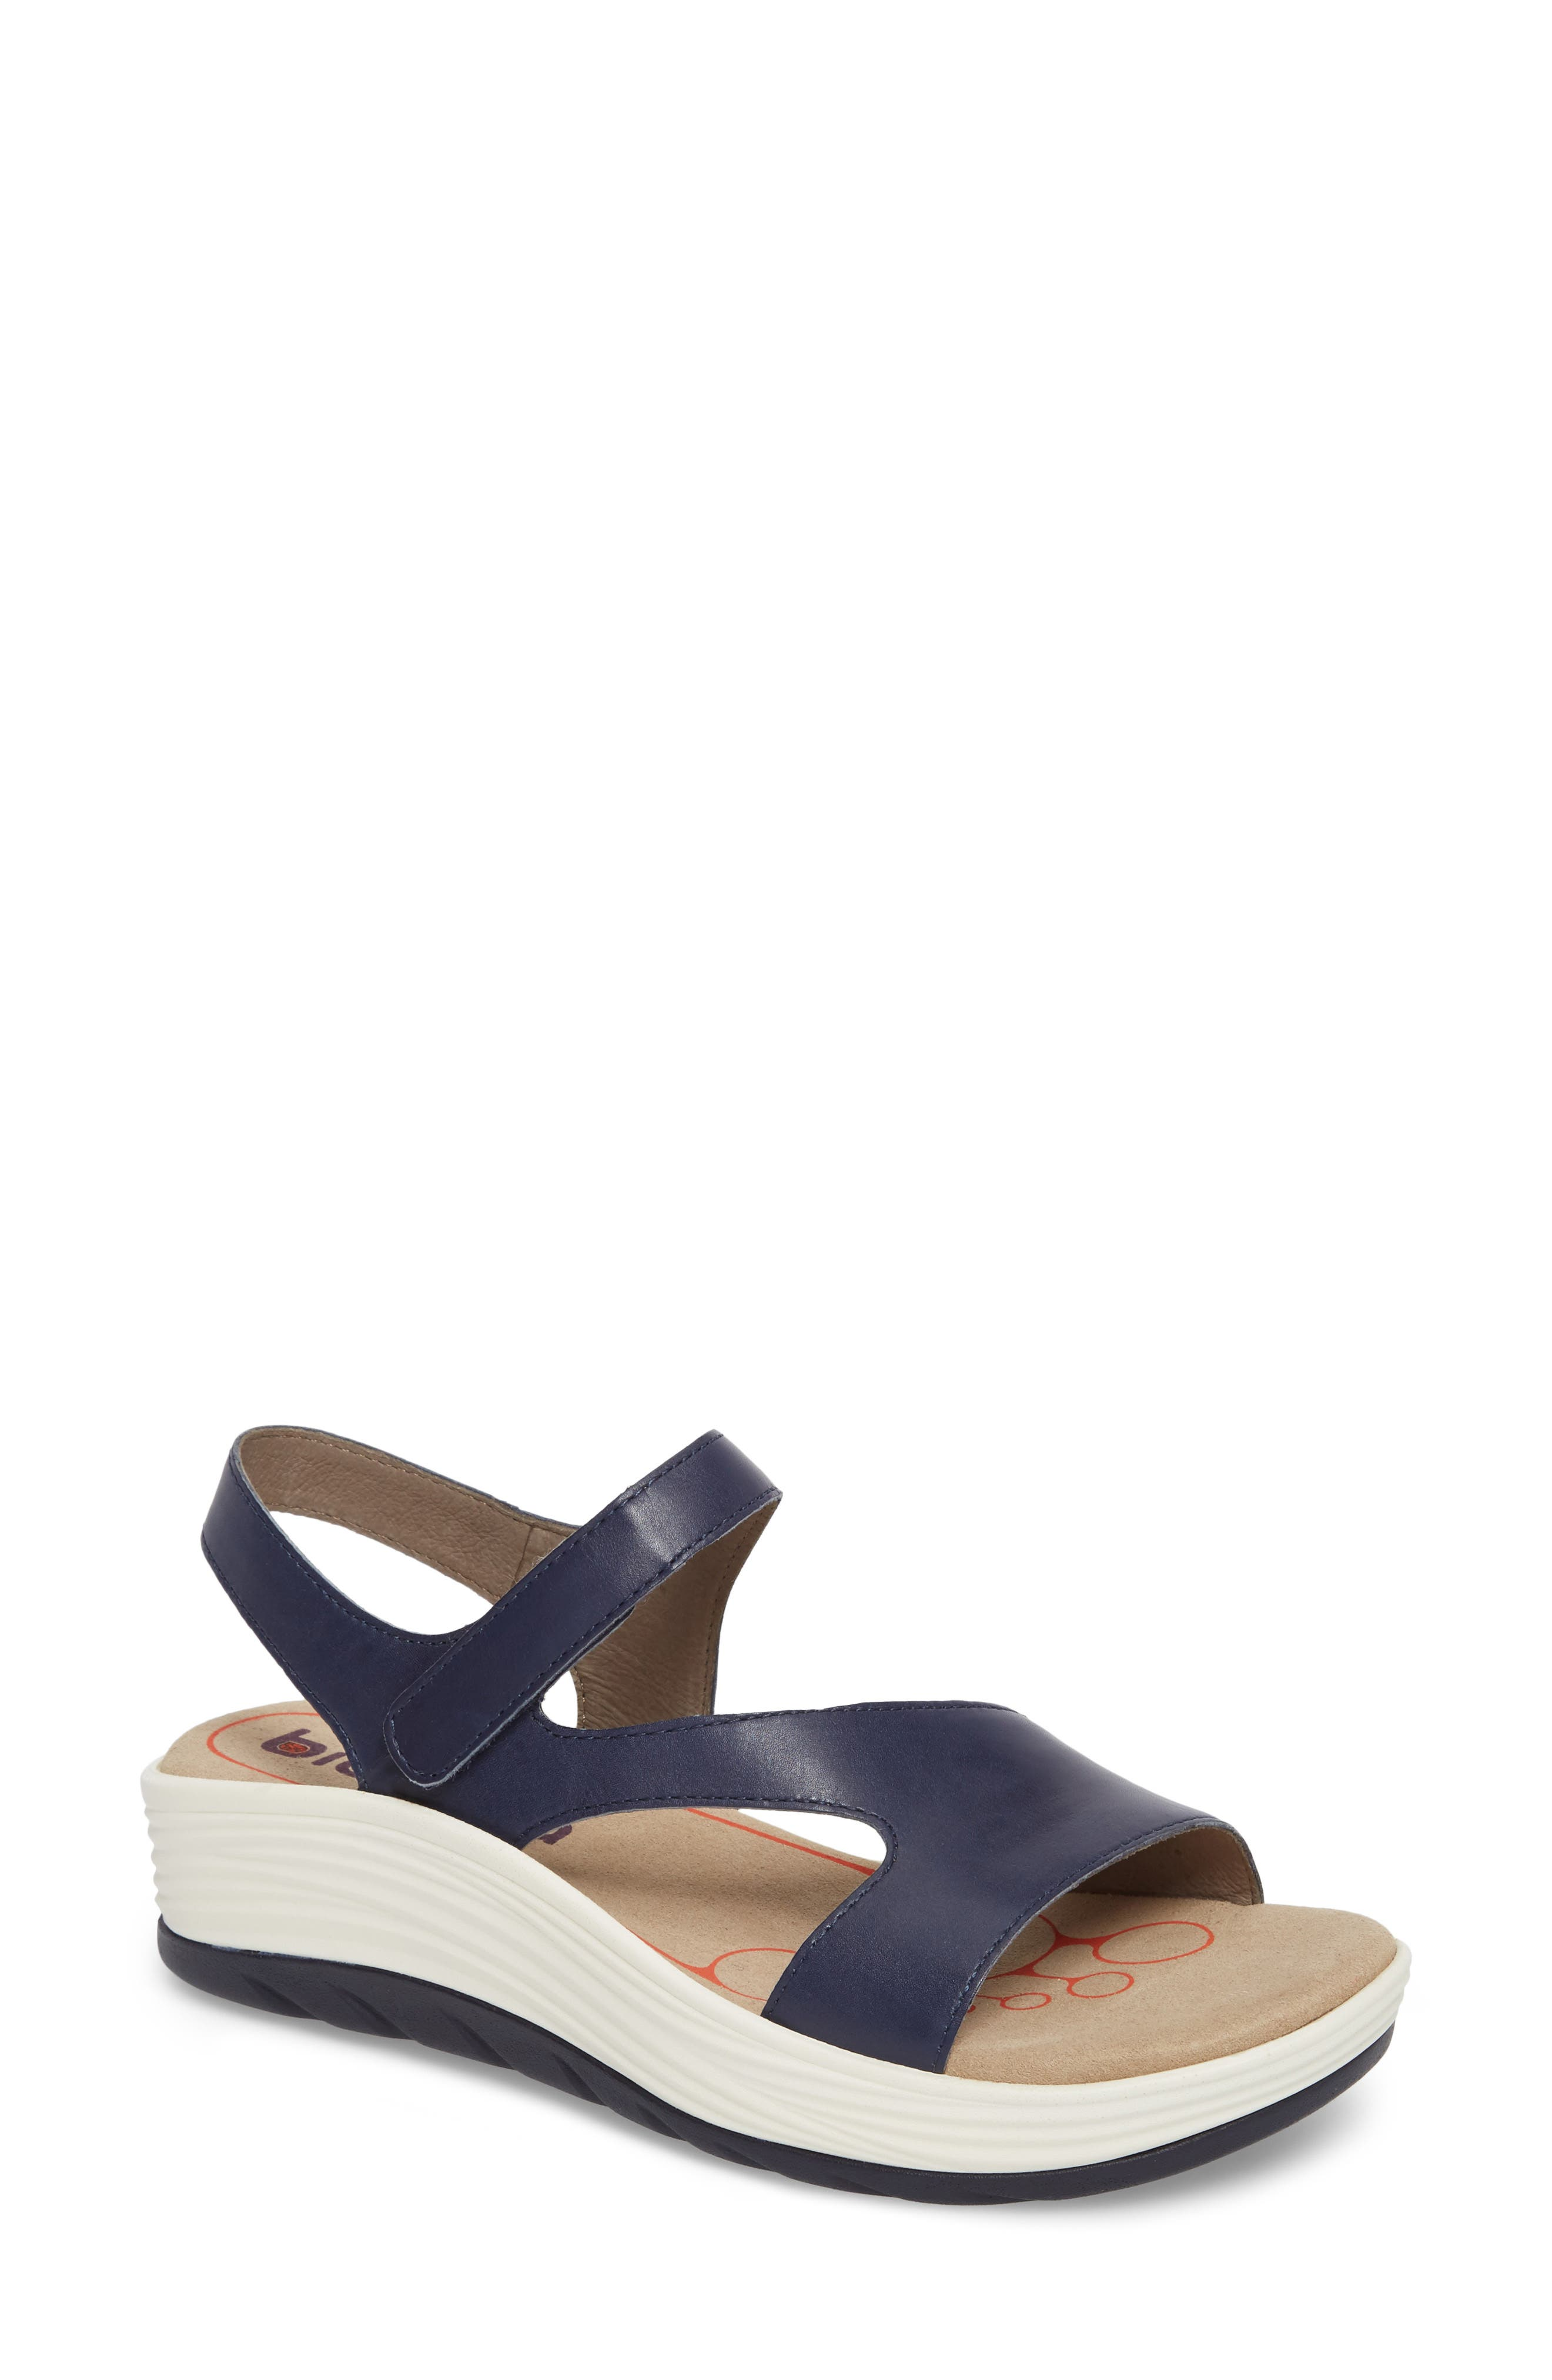 Cybele Platform Sandal,                             Main thumbnail 1, color,                             Peacoat Navy Leather